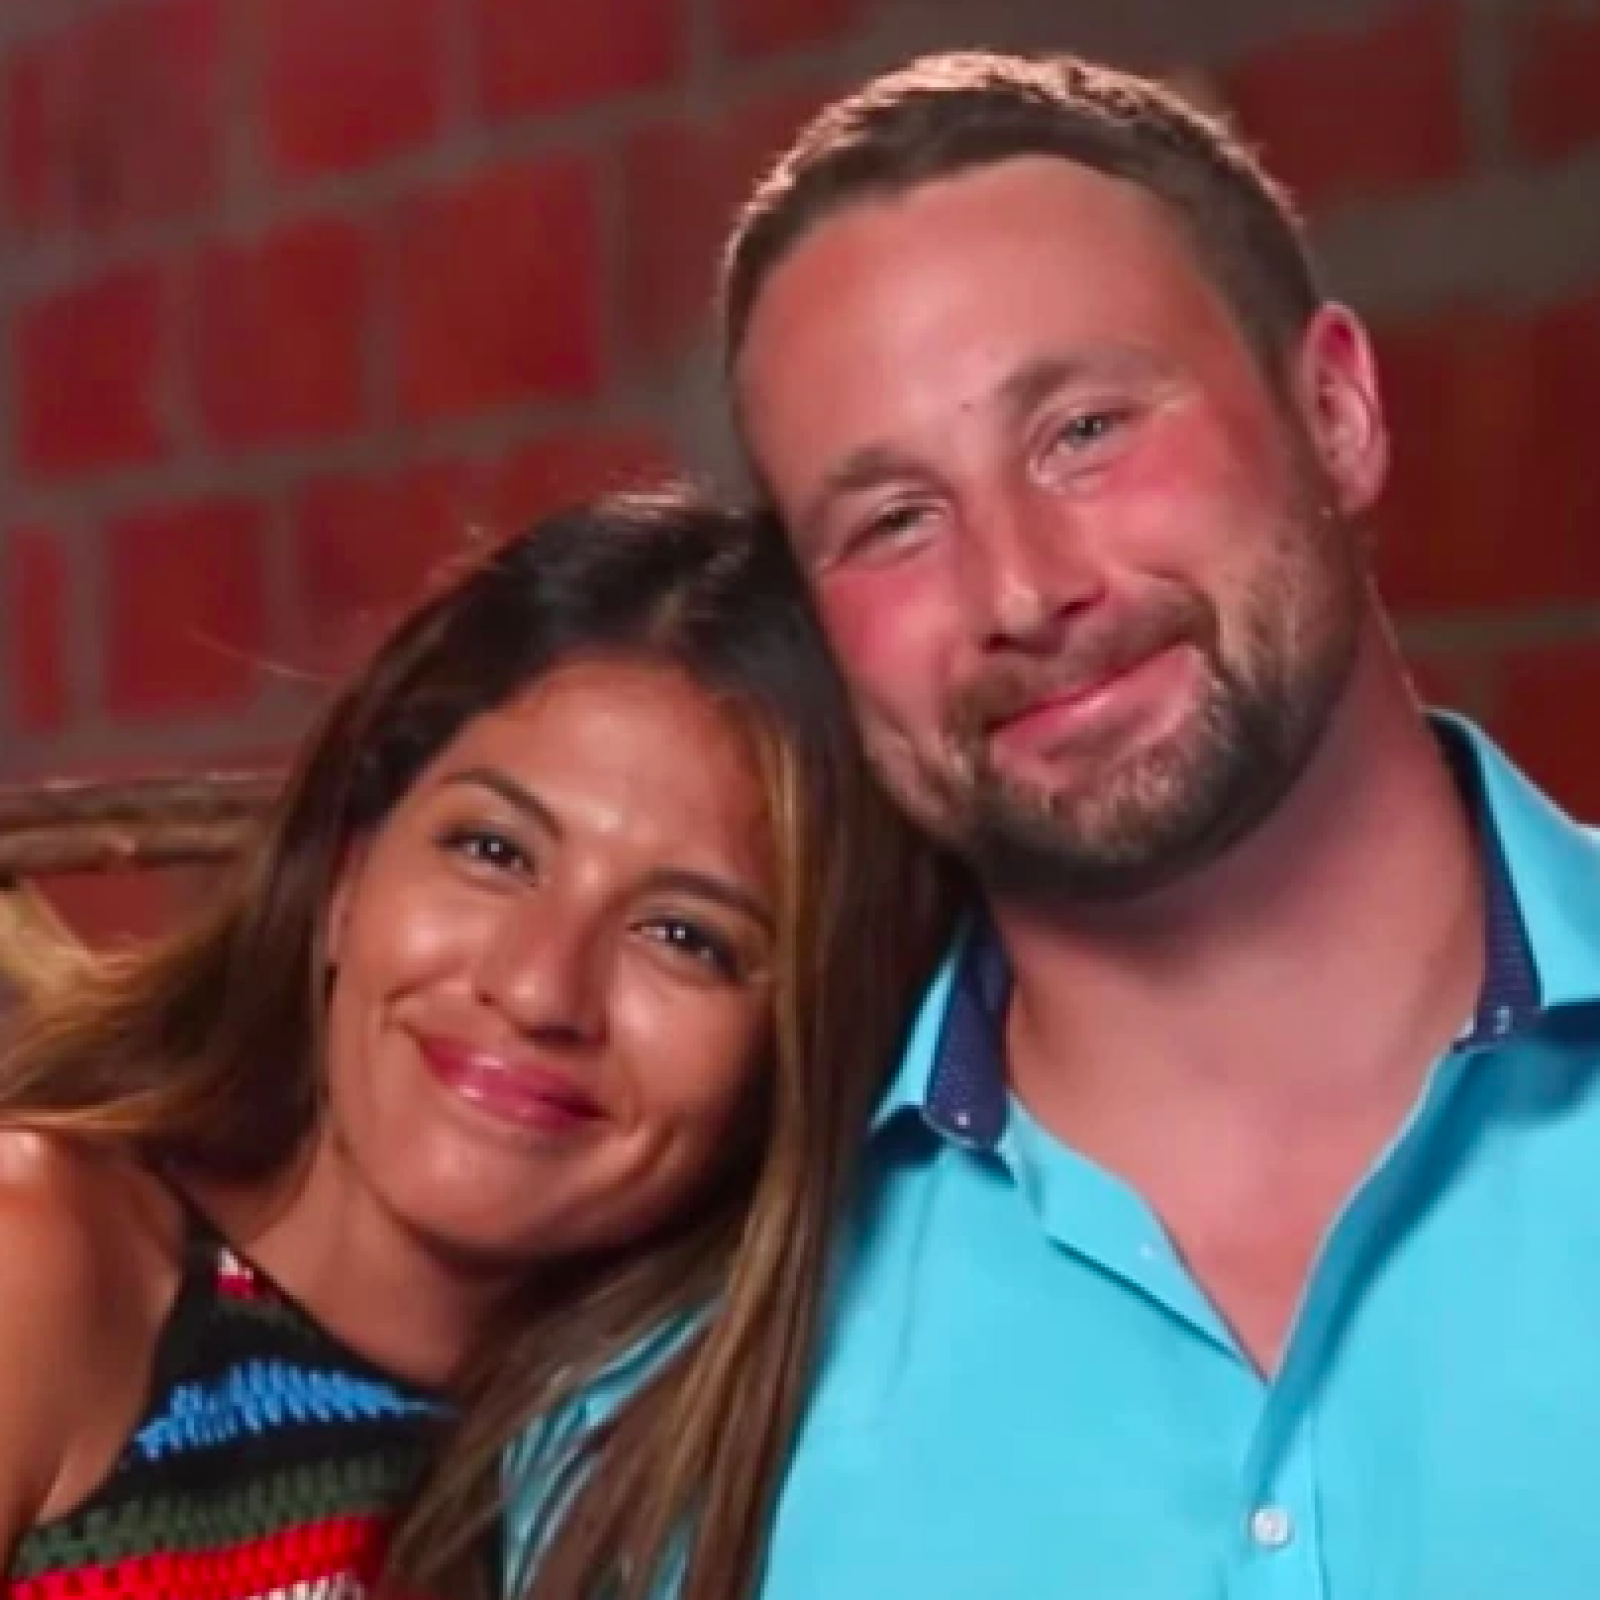 90 Day Fiancé' Star Evelin Responds on Instagram to Ditching Corey